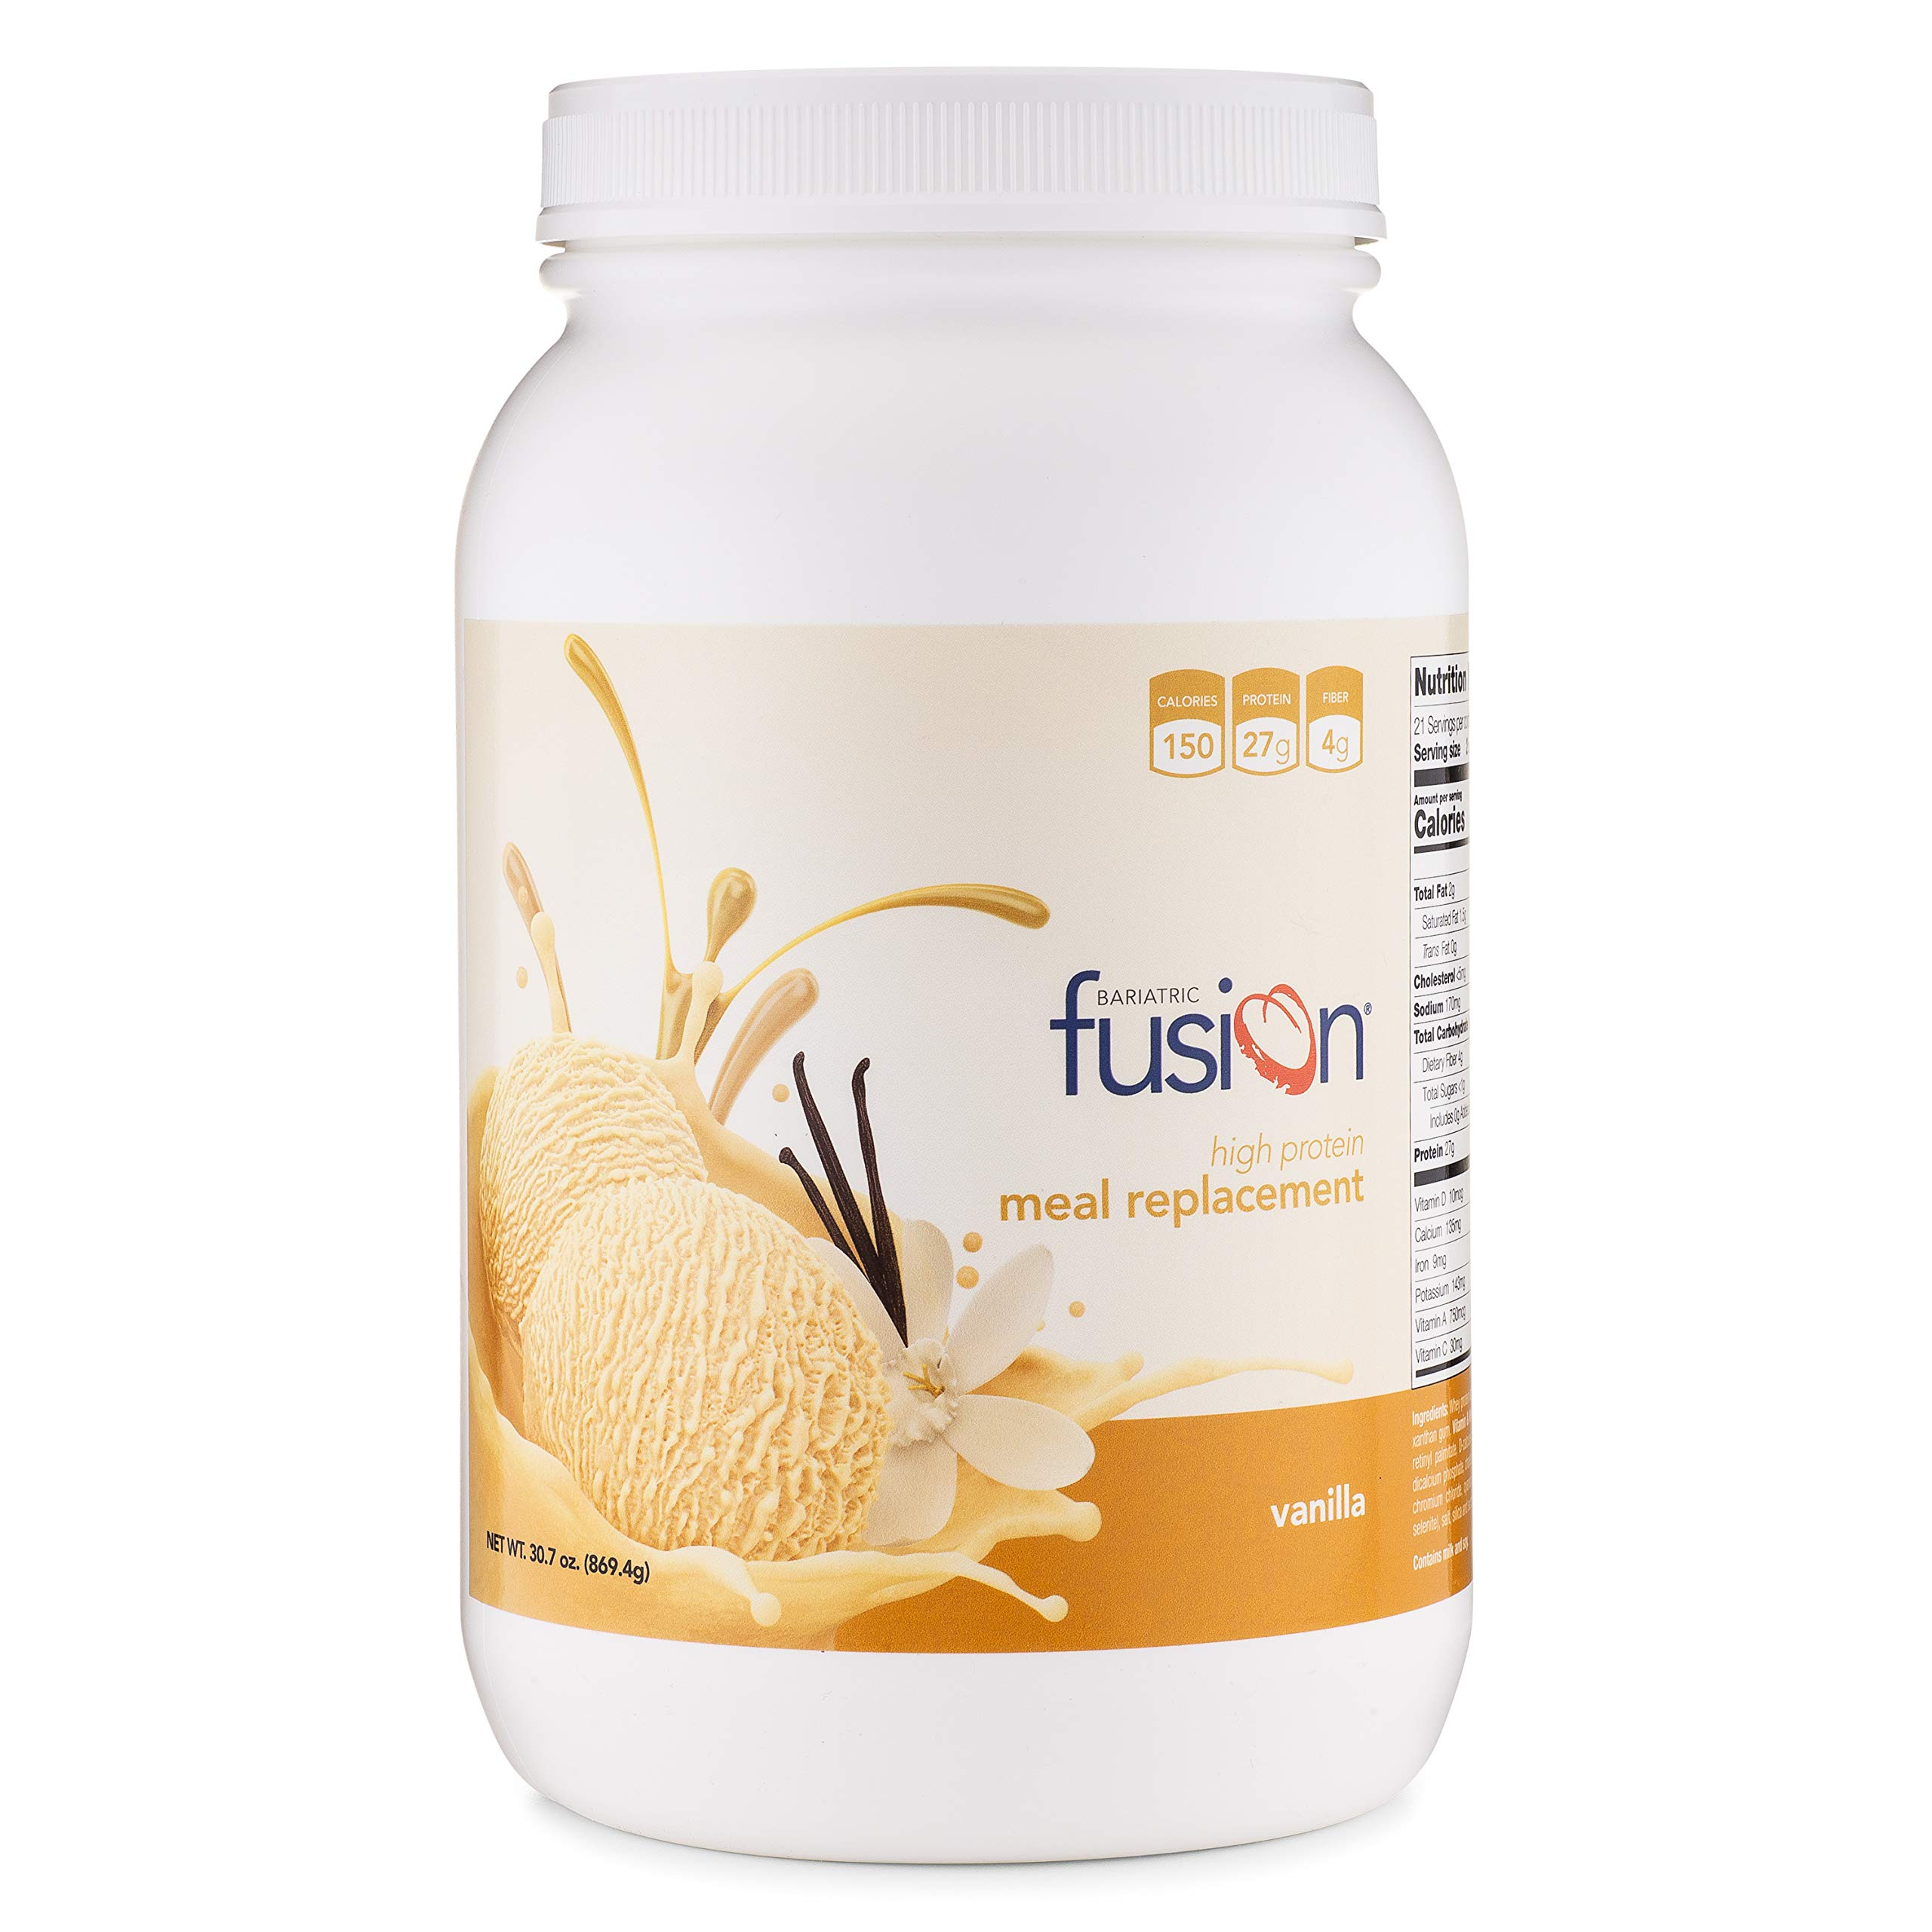 Bariatric Fusion Vanilla Meal Replacement Protein 21 Serving Tub for Bariatric Surgery Patients Including Gastric Bypass & Sleeve Gastrectomy